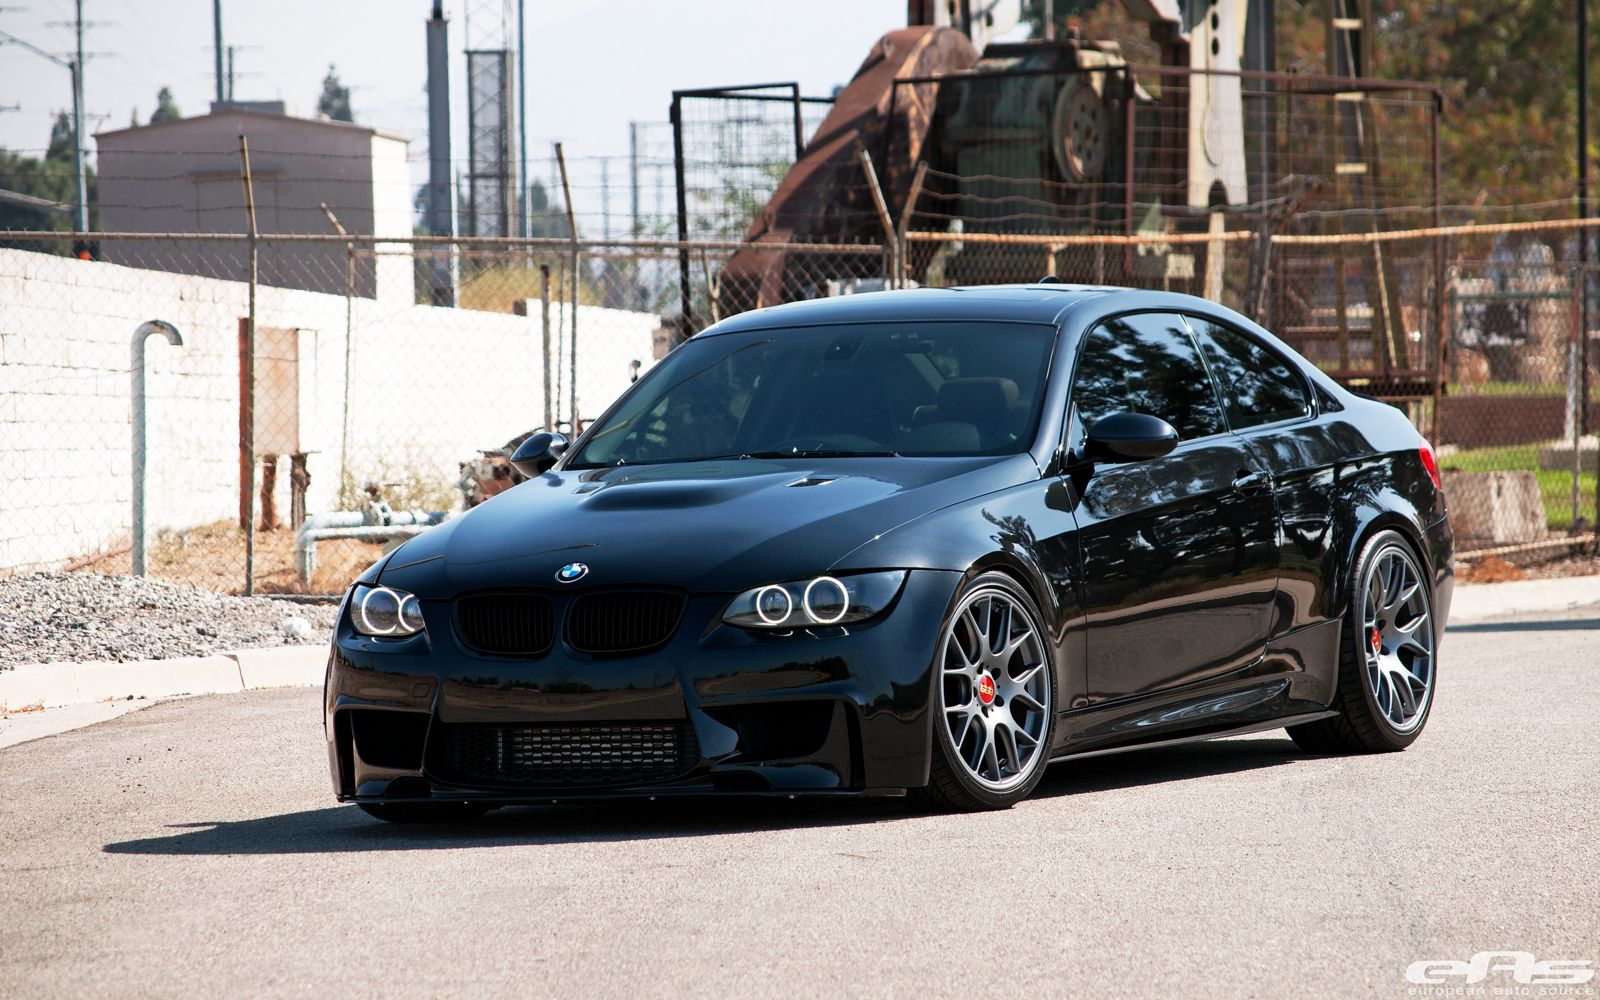 High Quality The BMW 335i E92 Twin Turbo Specs, Images And More... | RpmRush